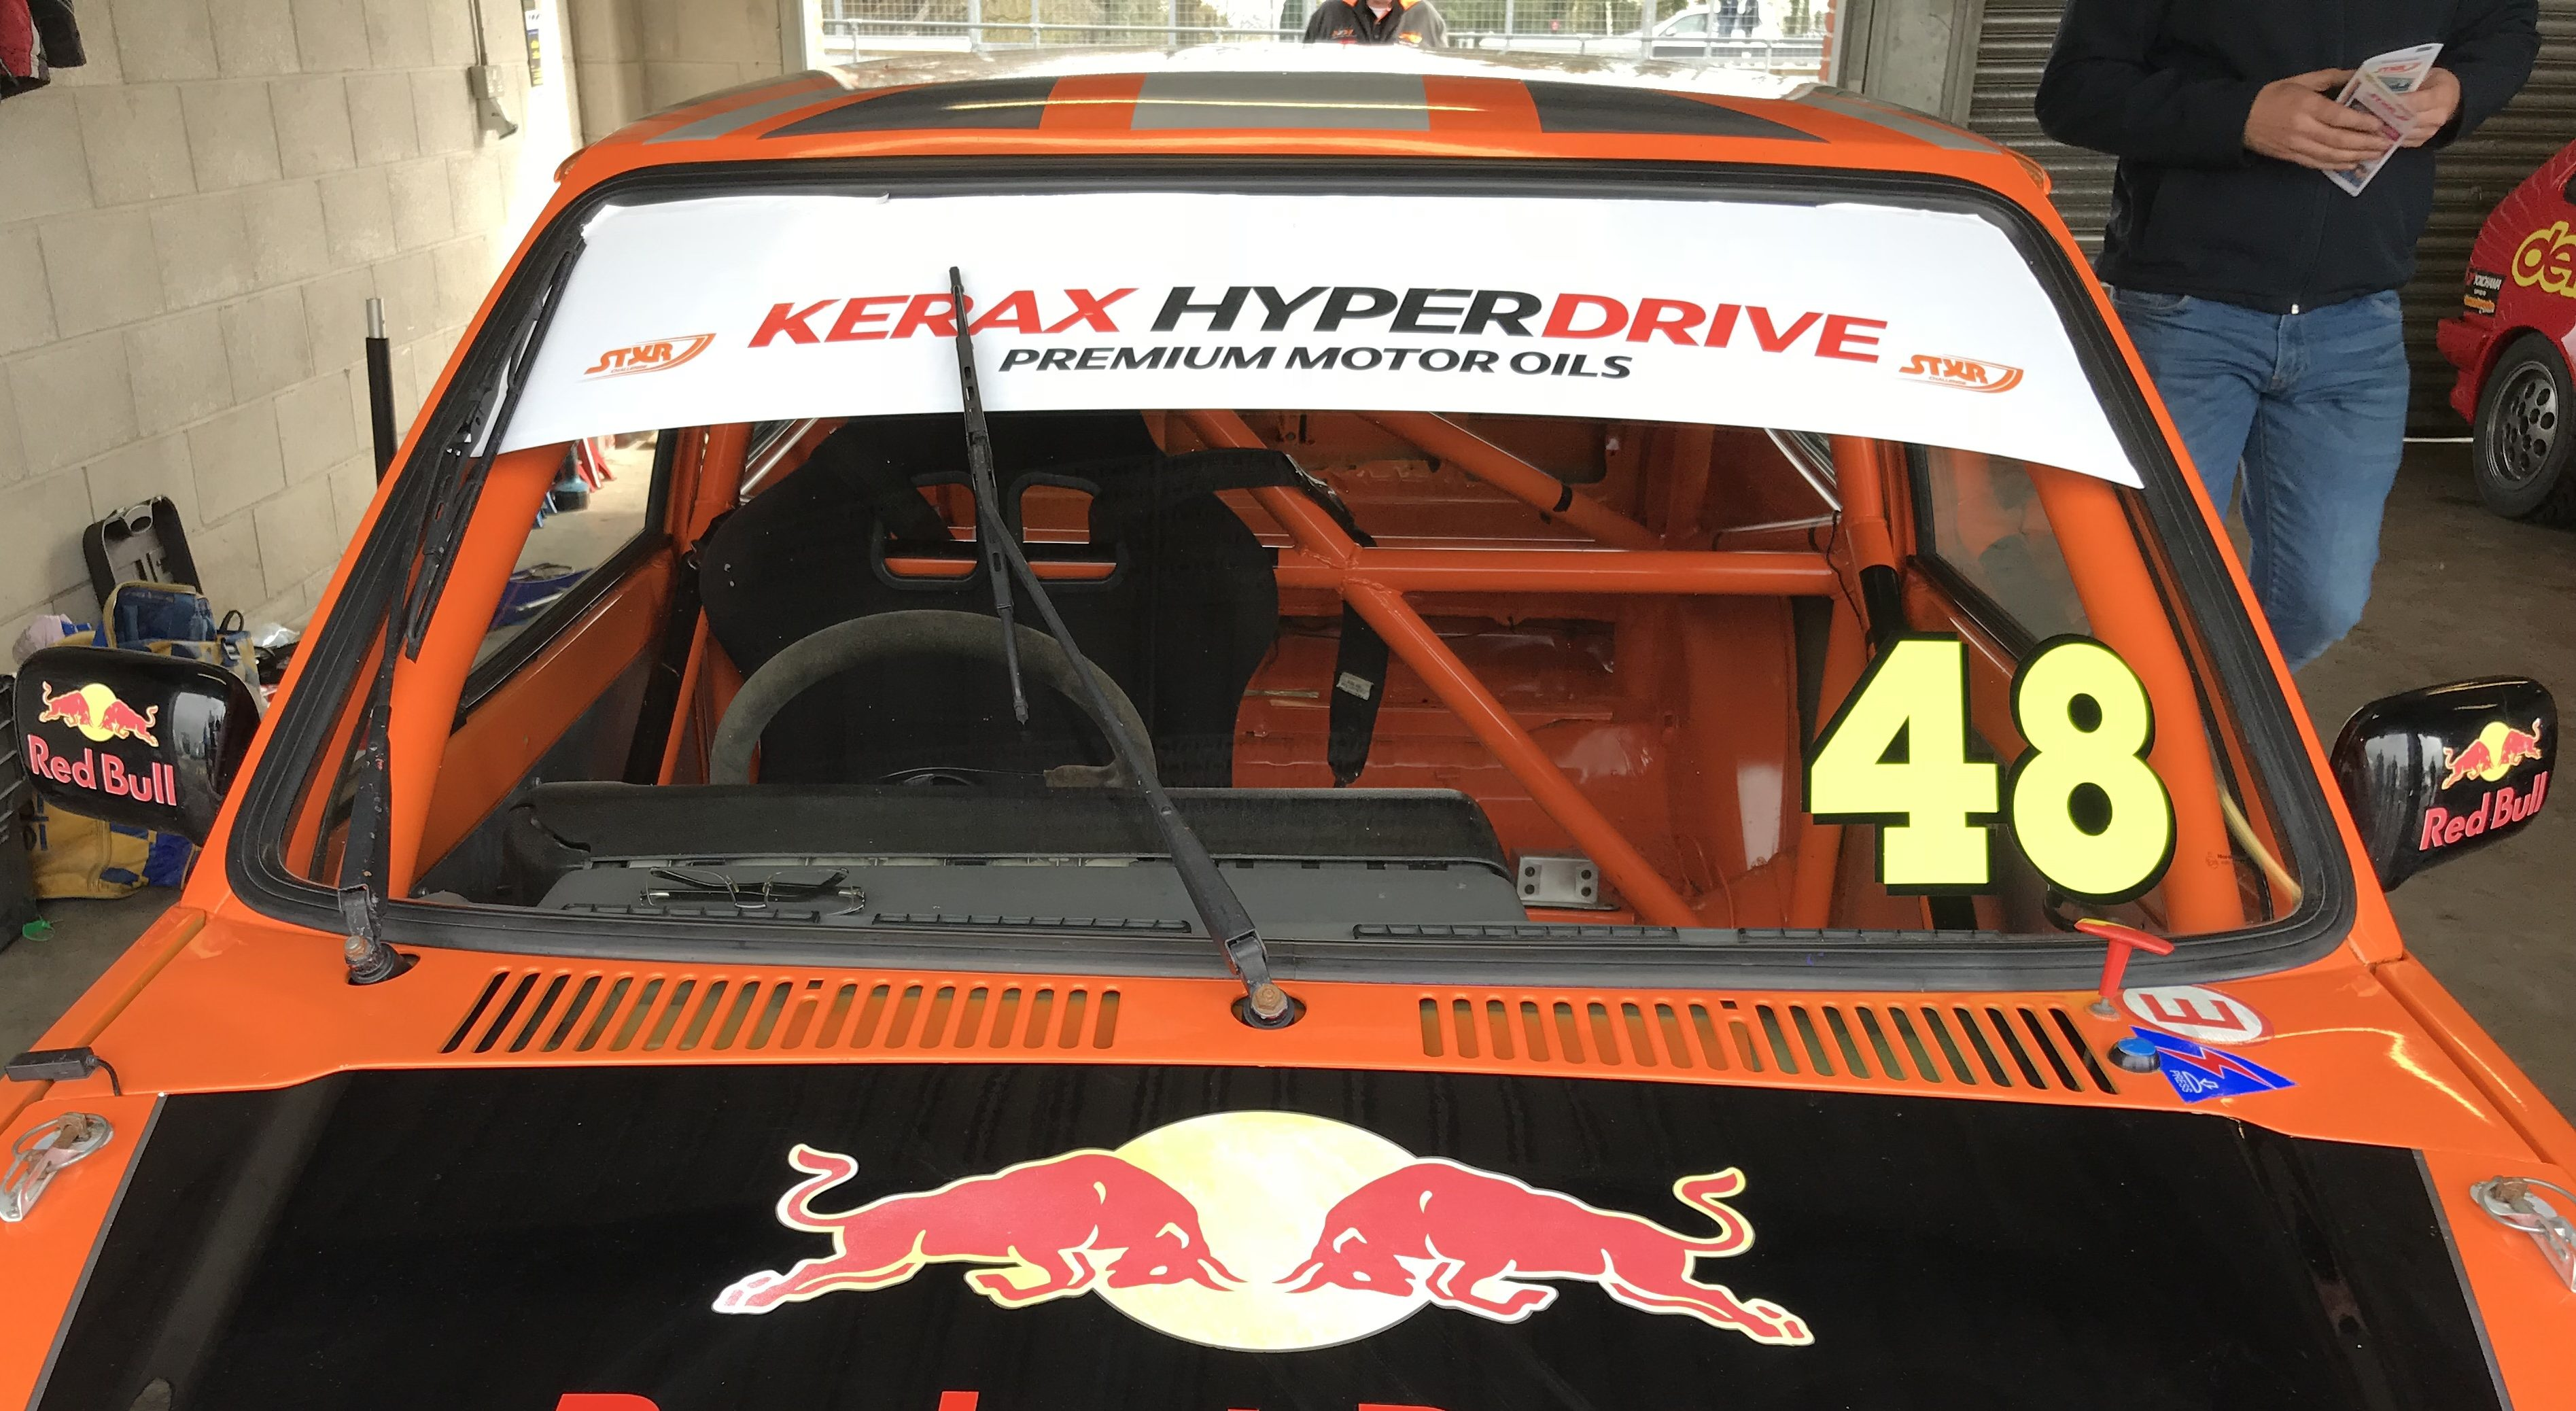 ST-XR Double for Roberts at Oulton Park